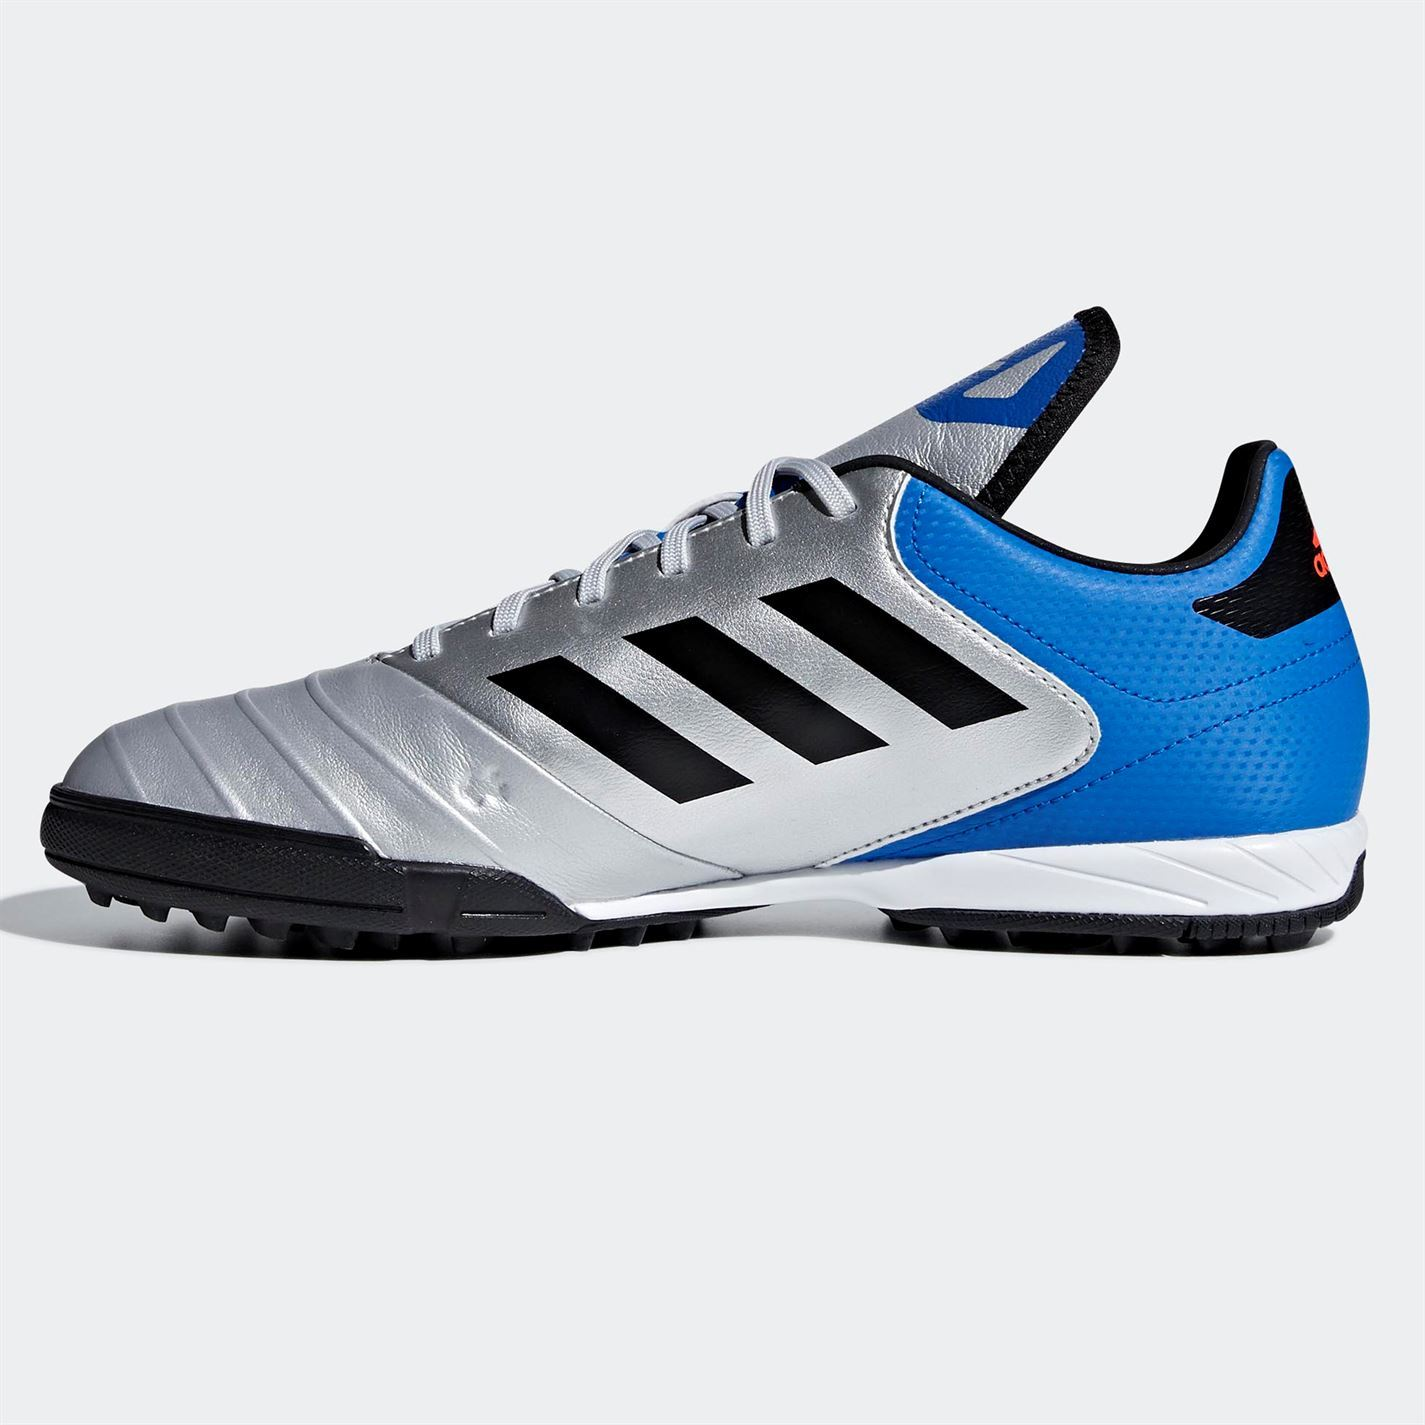 ... adidas Copa Tango 18.3 Astro Turf Football Trainers Mens Silver Soccer  Shoes f04cd4163c